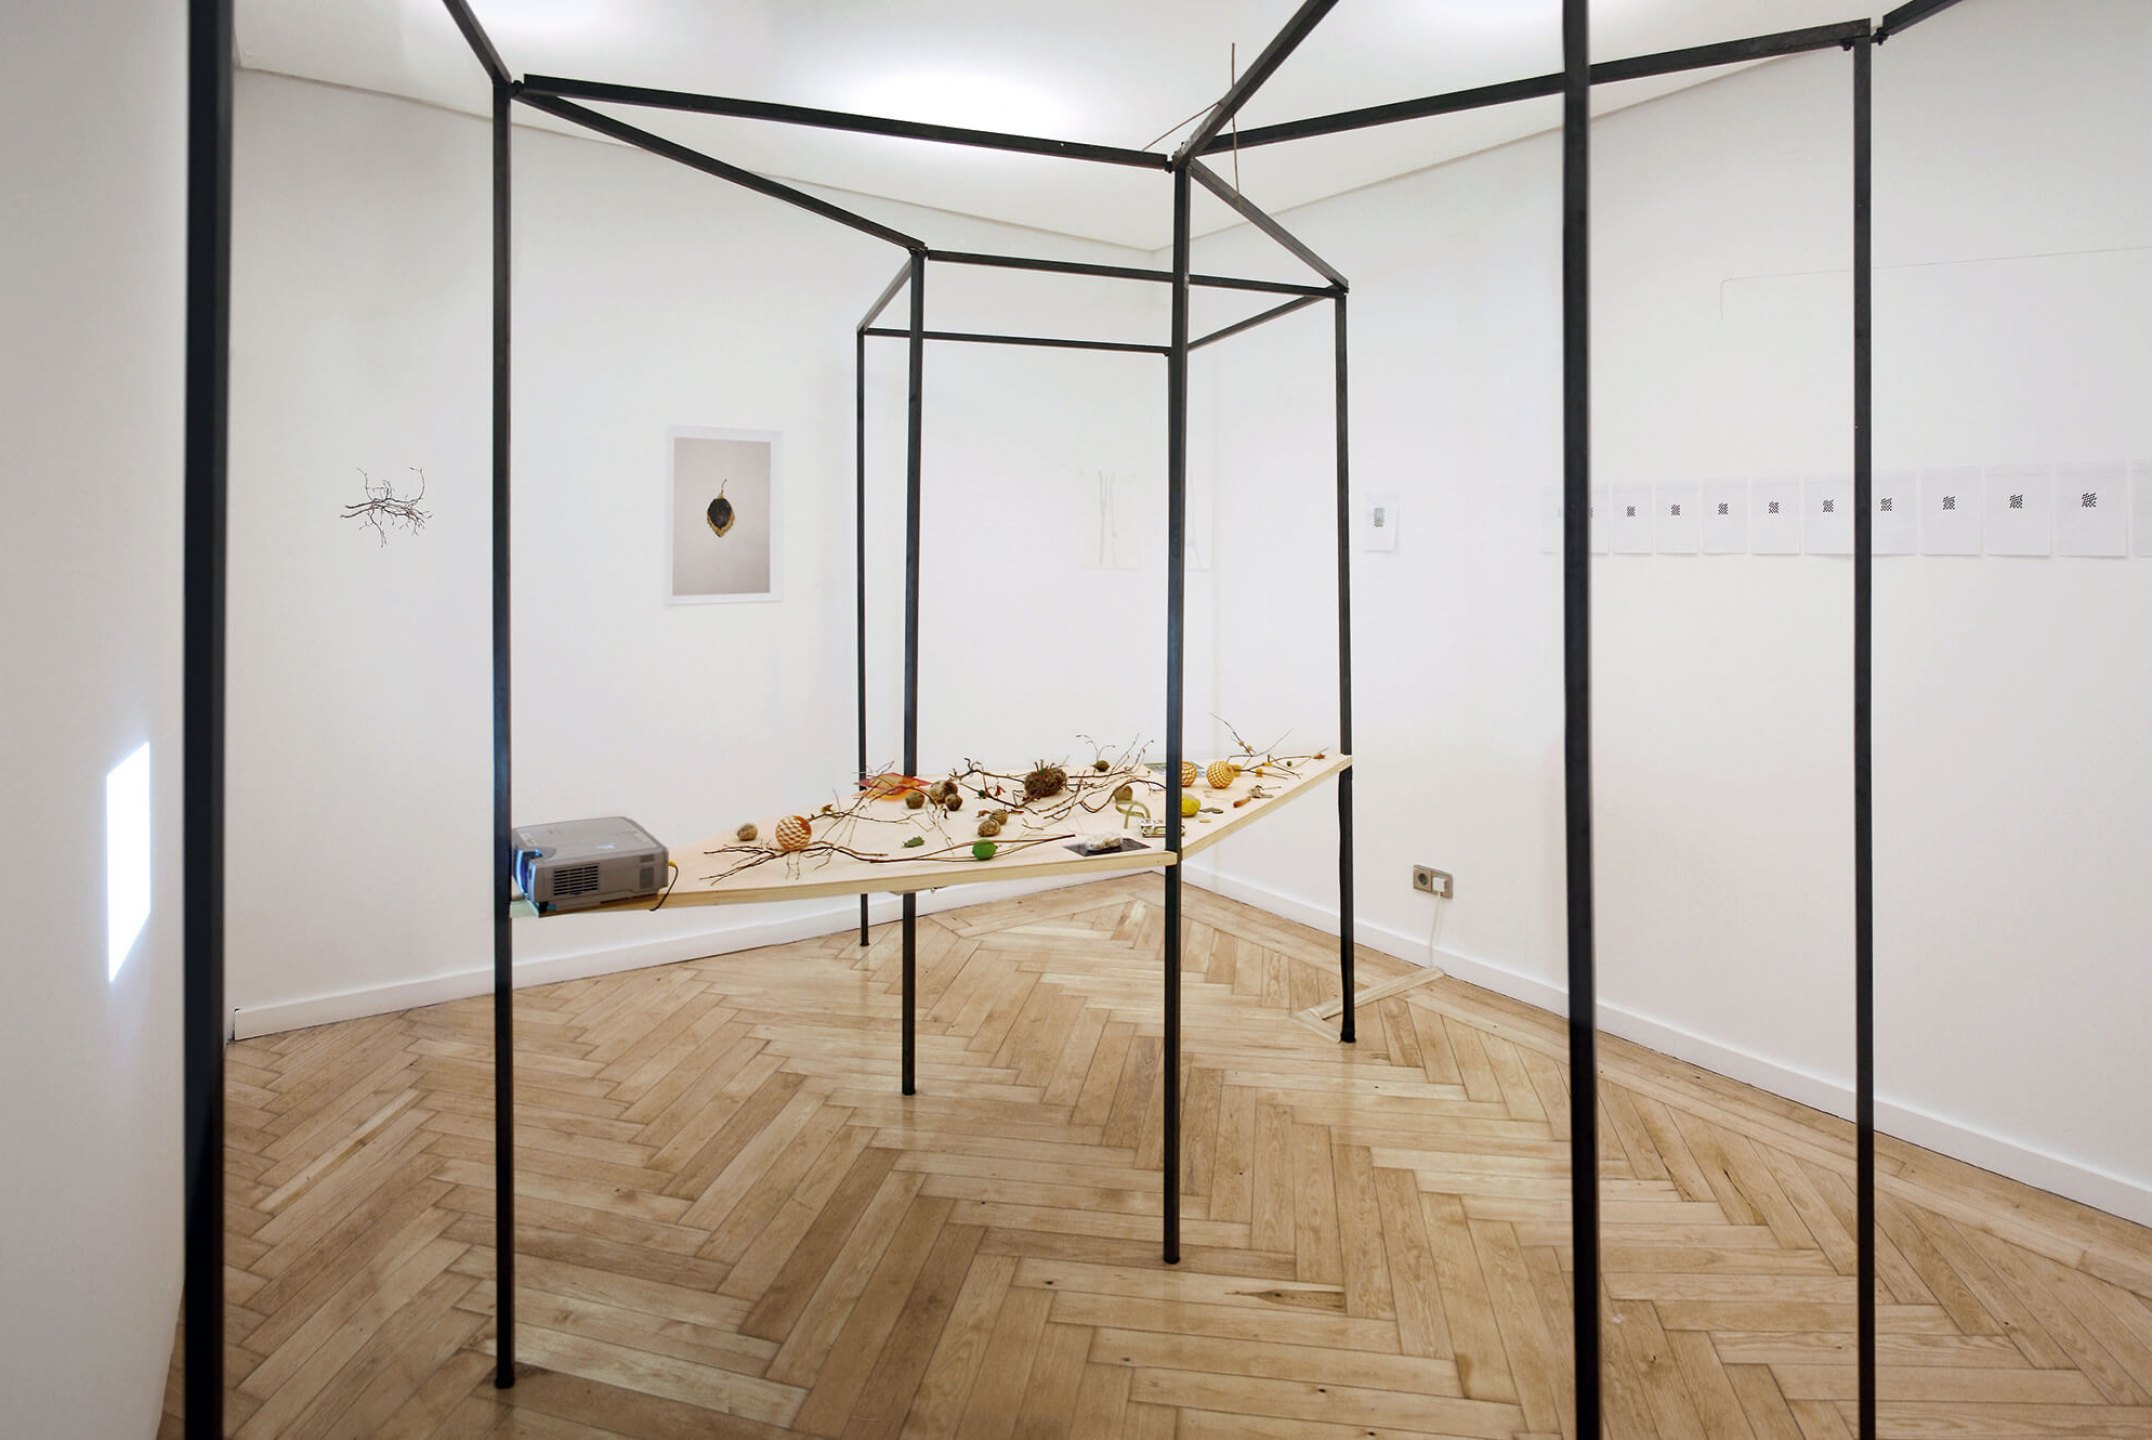 Daniel Steegmann Mangrané, <em>Not Yet Titled</em>, 2007, Modular structure, 2 water-colors, 2 photo, 1 collage, 2 drawings, 1 animation and diverse sculptures, 5,40× 3,40× 3 cm - Mendes Wood DM